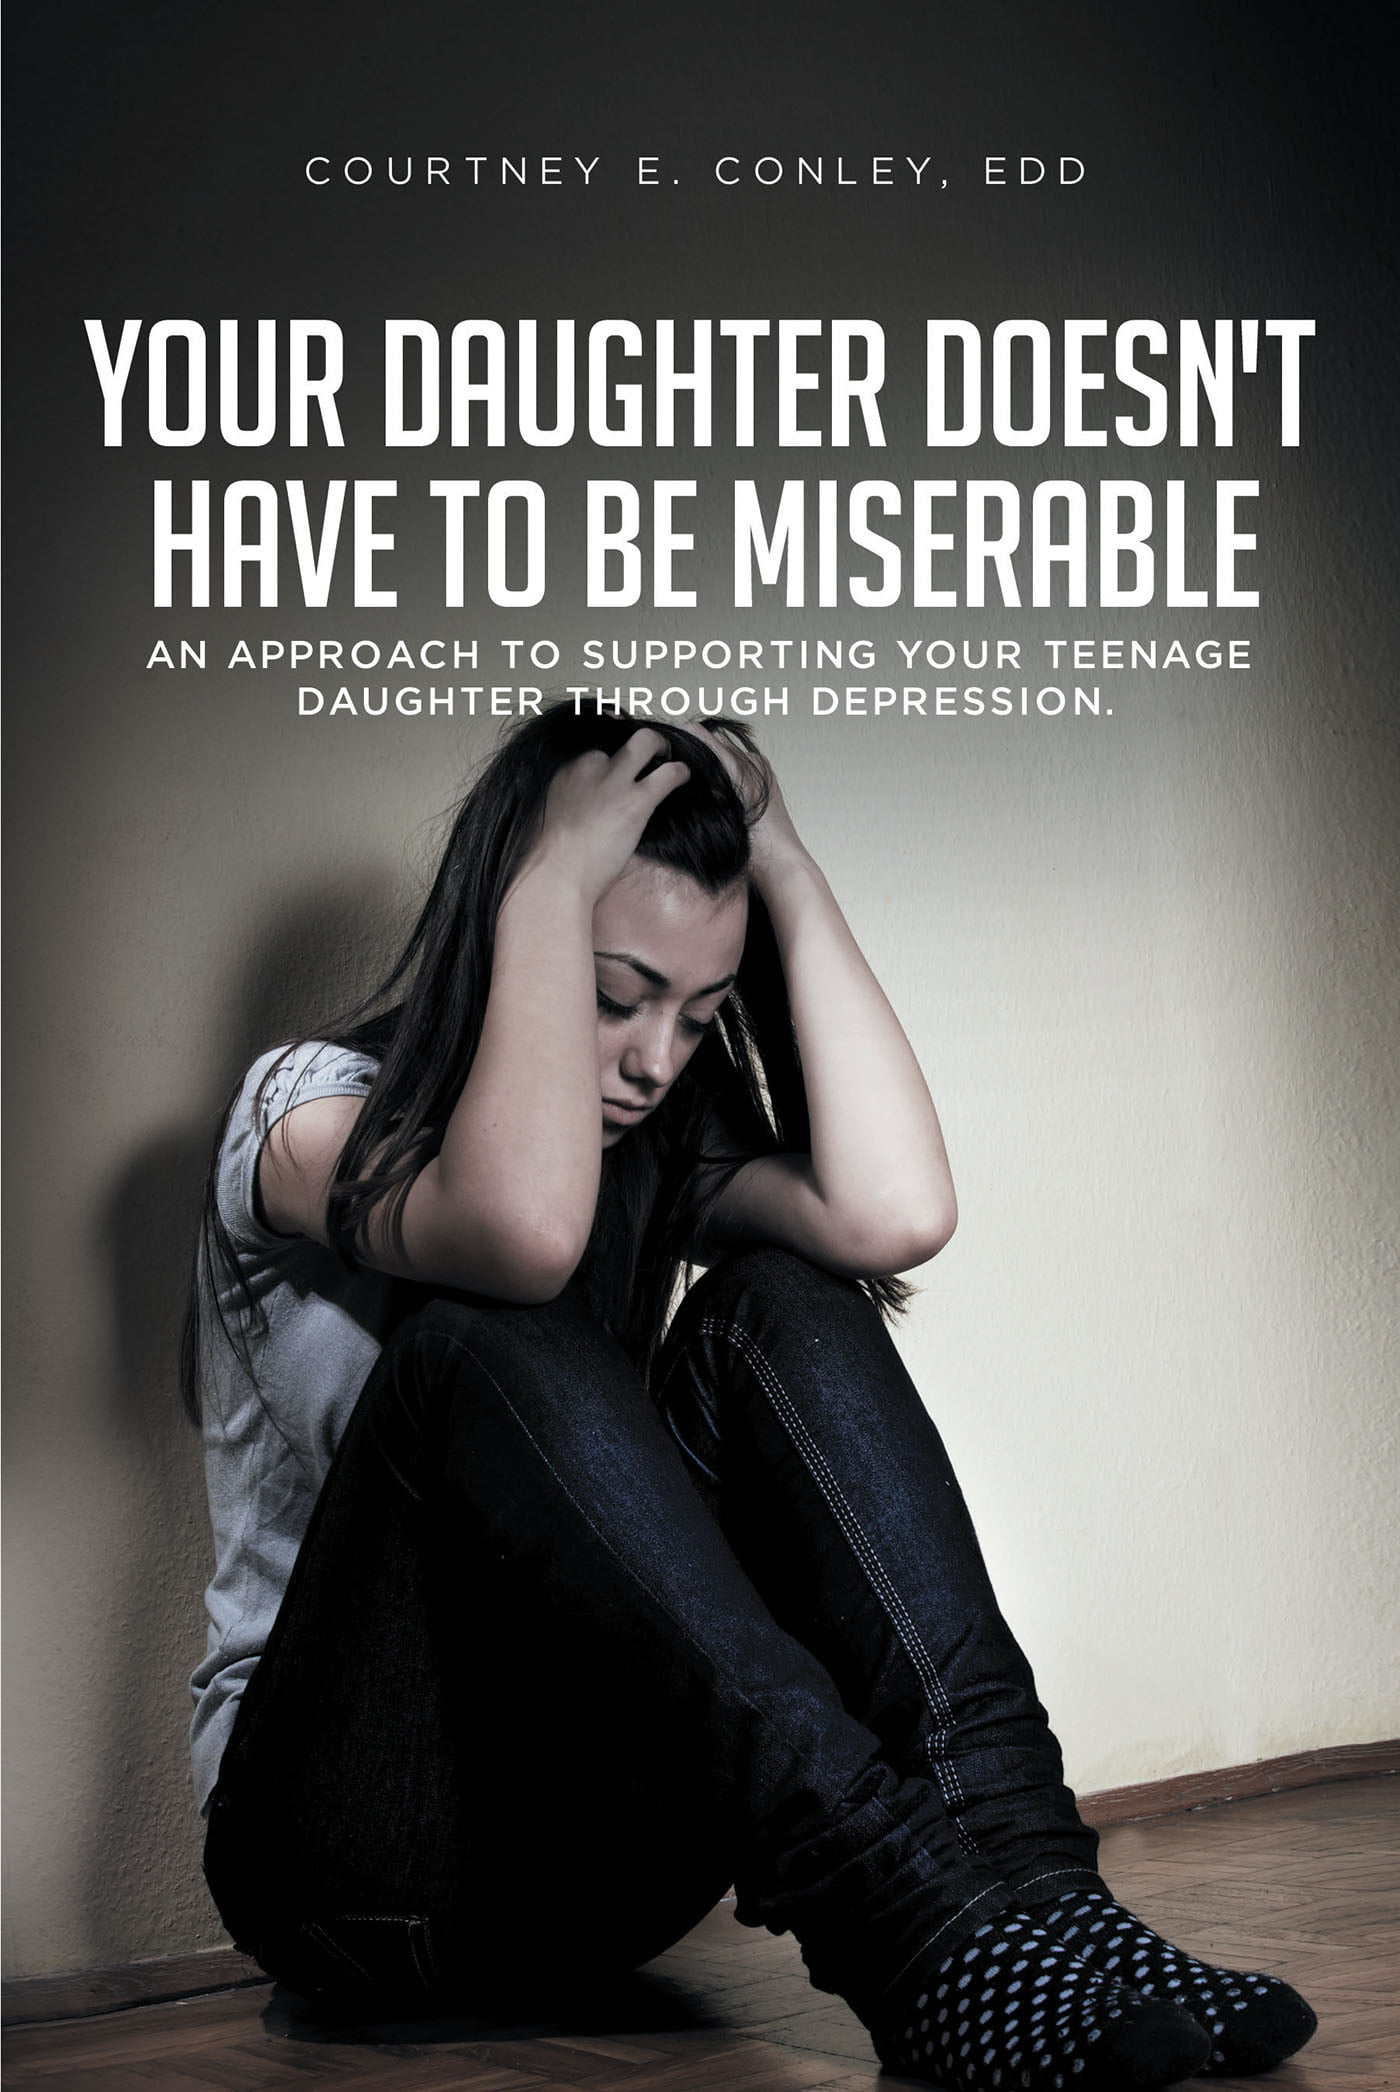 Courtney E. Conley's New Book 'Your Daughter Doesn't Have to Be Miserable' Teaches an Approach to Supporting Individuals Through Depression